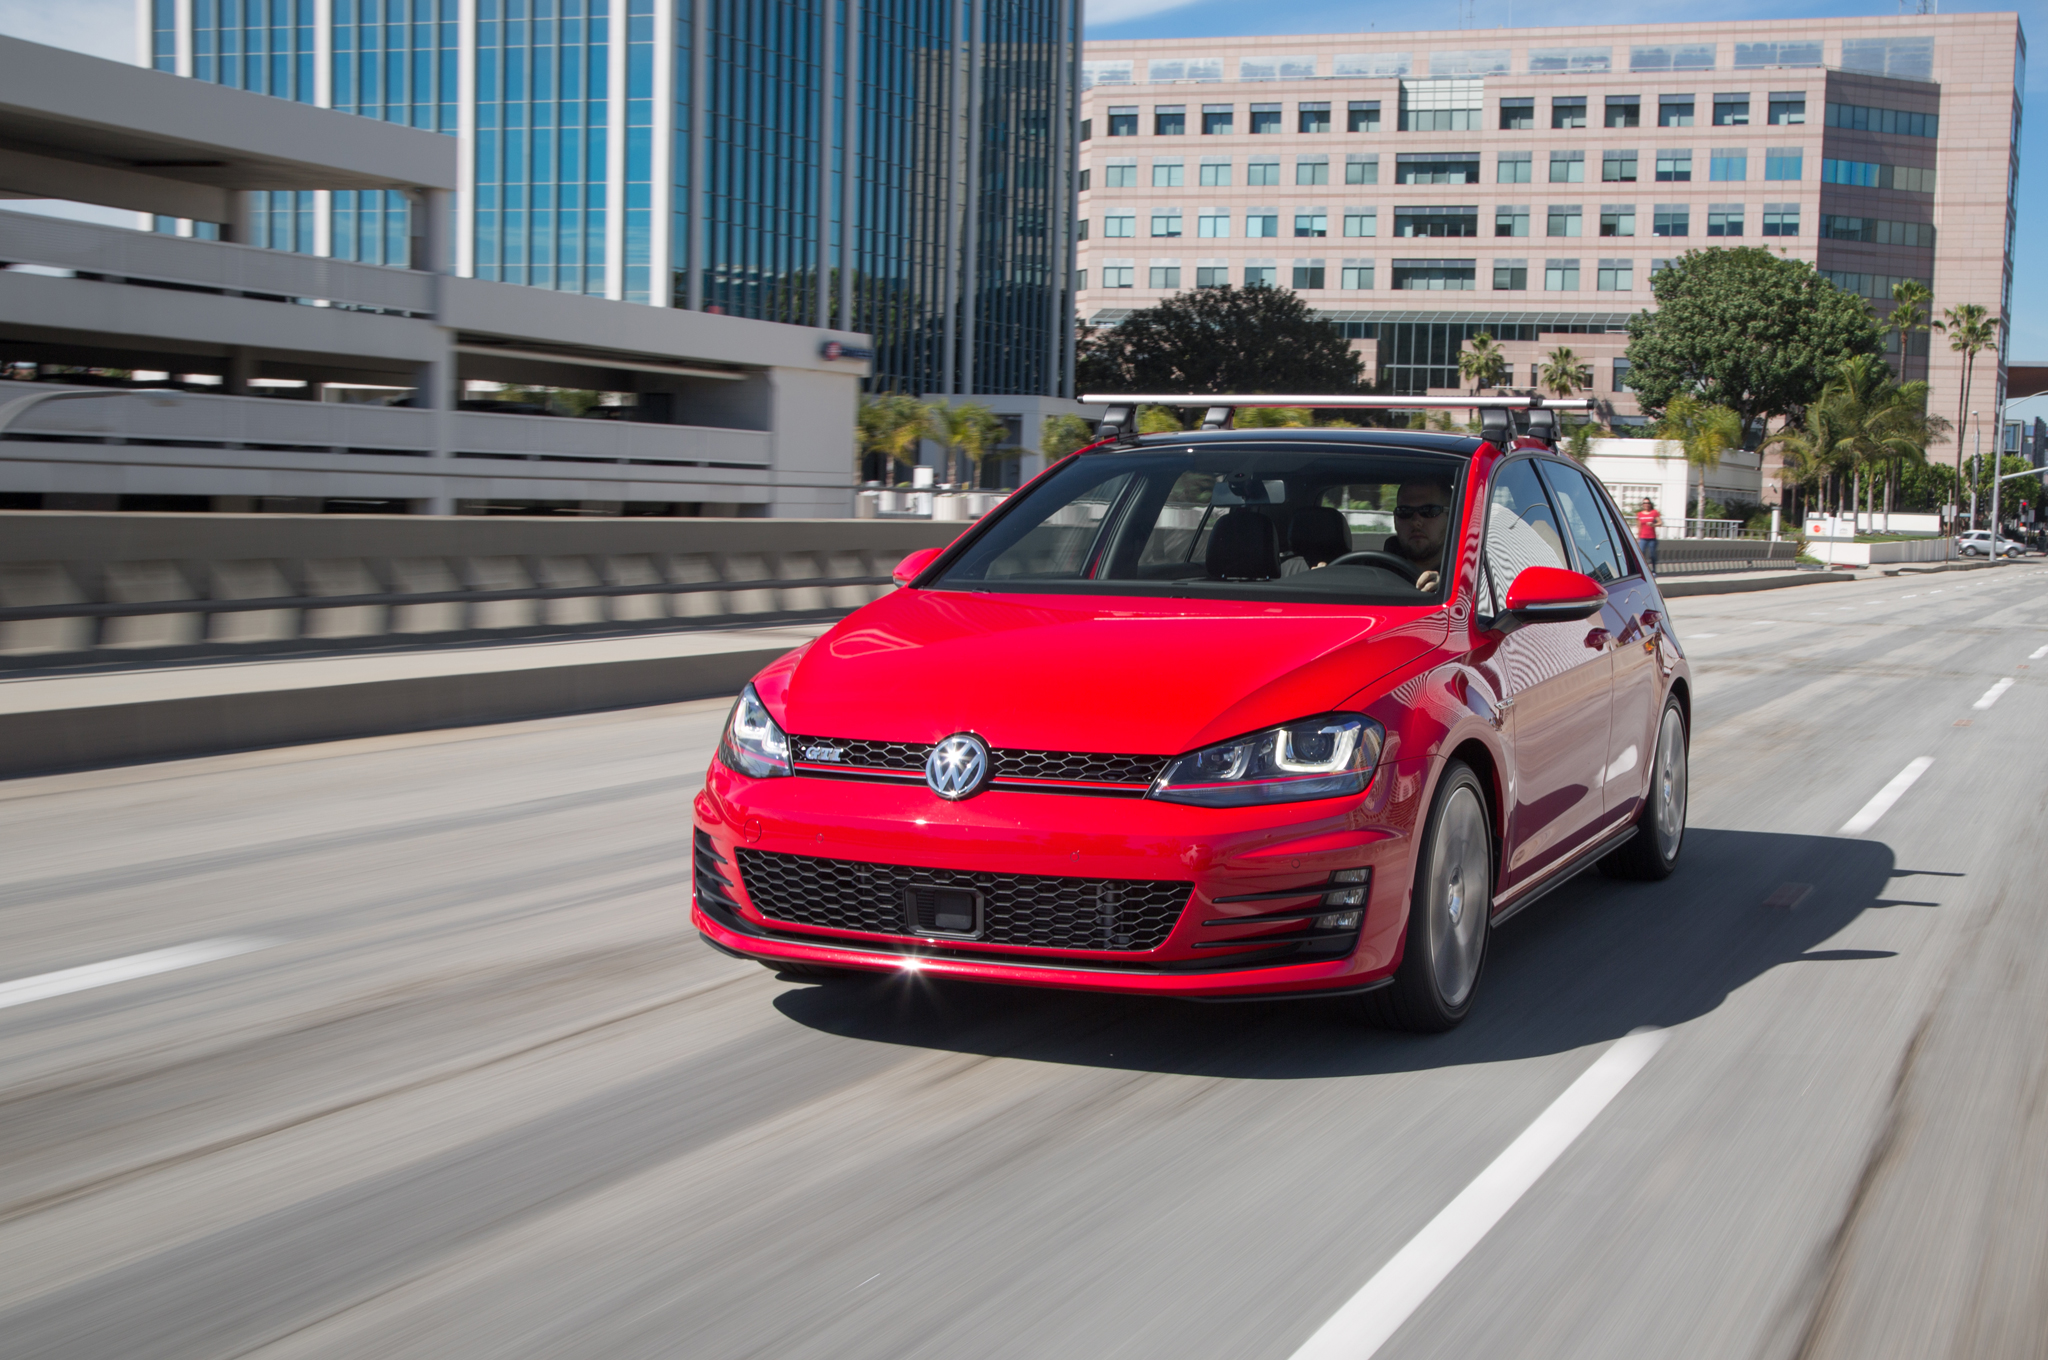 2015 Volkswagen Golf GTI Red With Roof Rack